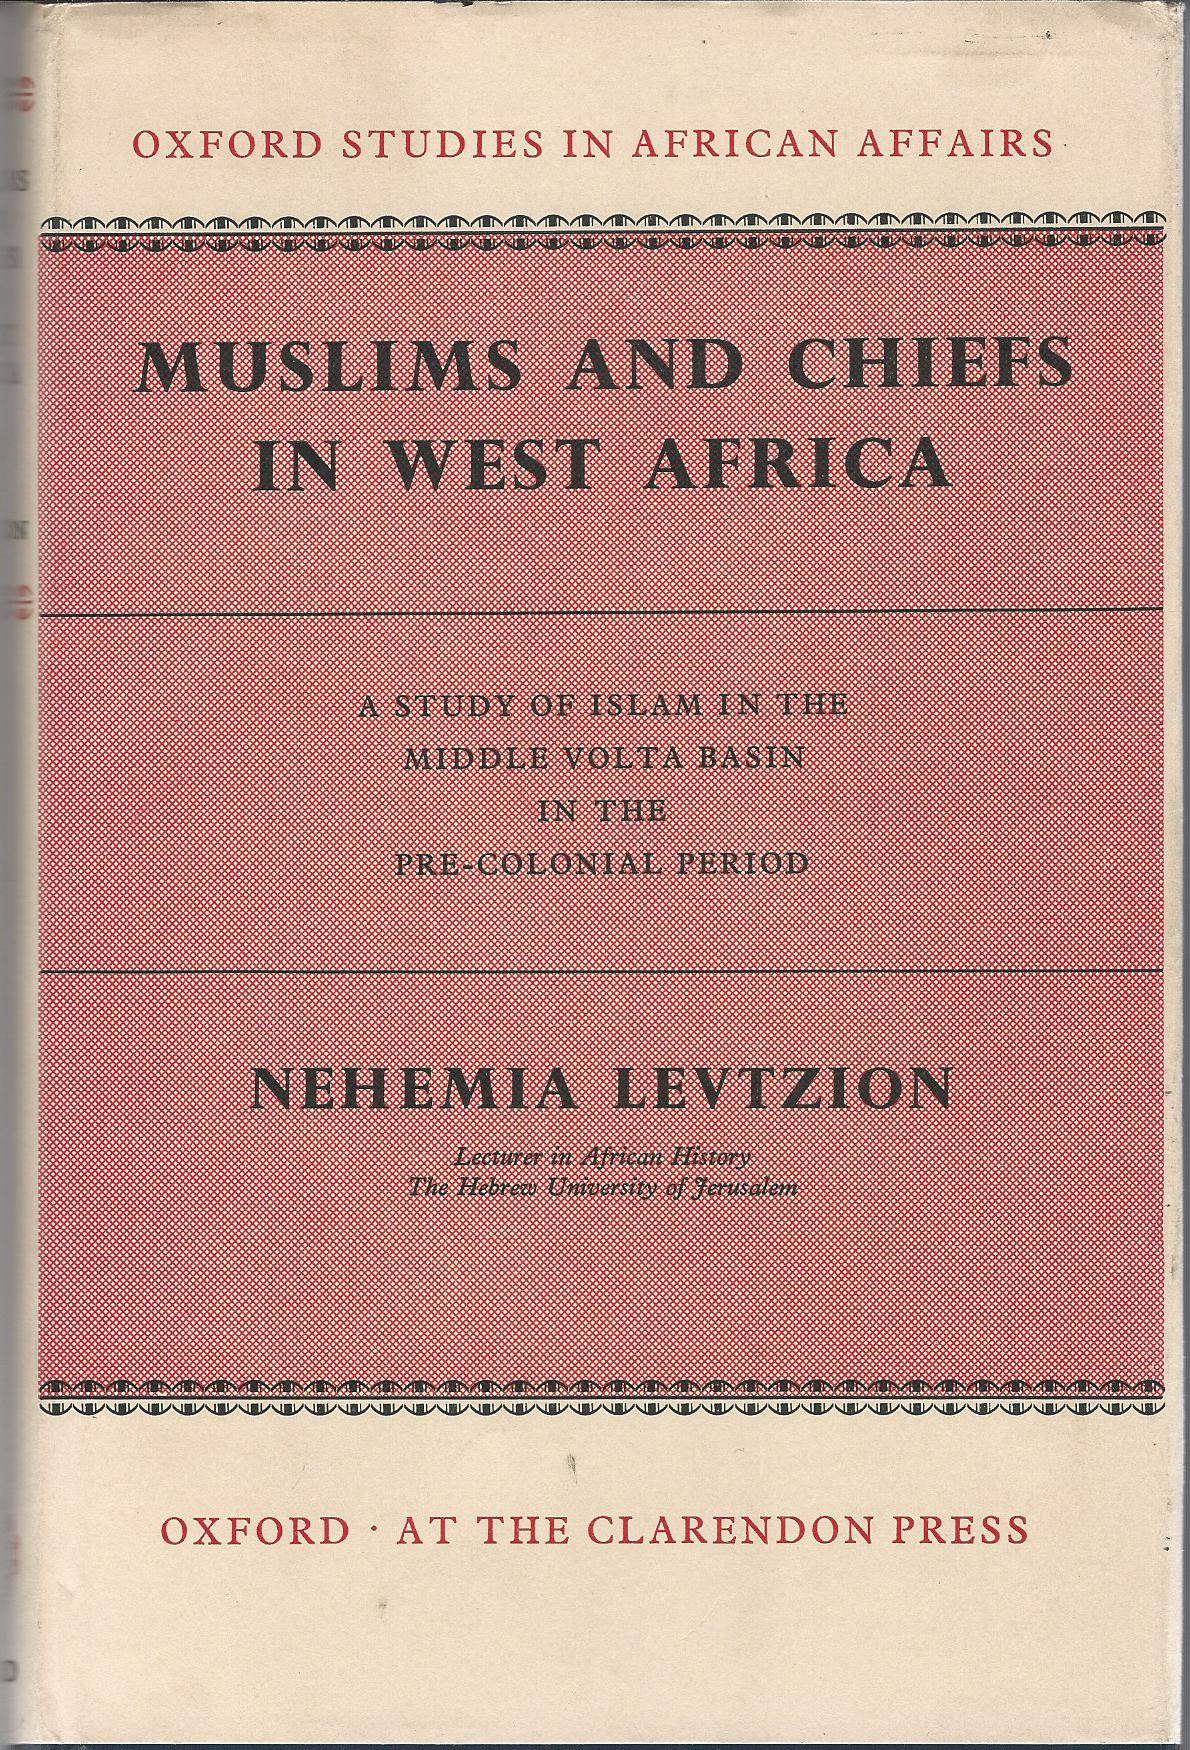 Image for Muslims and Chiefs in West Africa: A Study of Islam in the Middle Volta Basin in the Pre-Colonial Period.